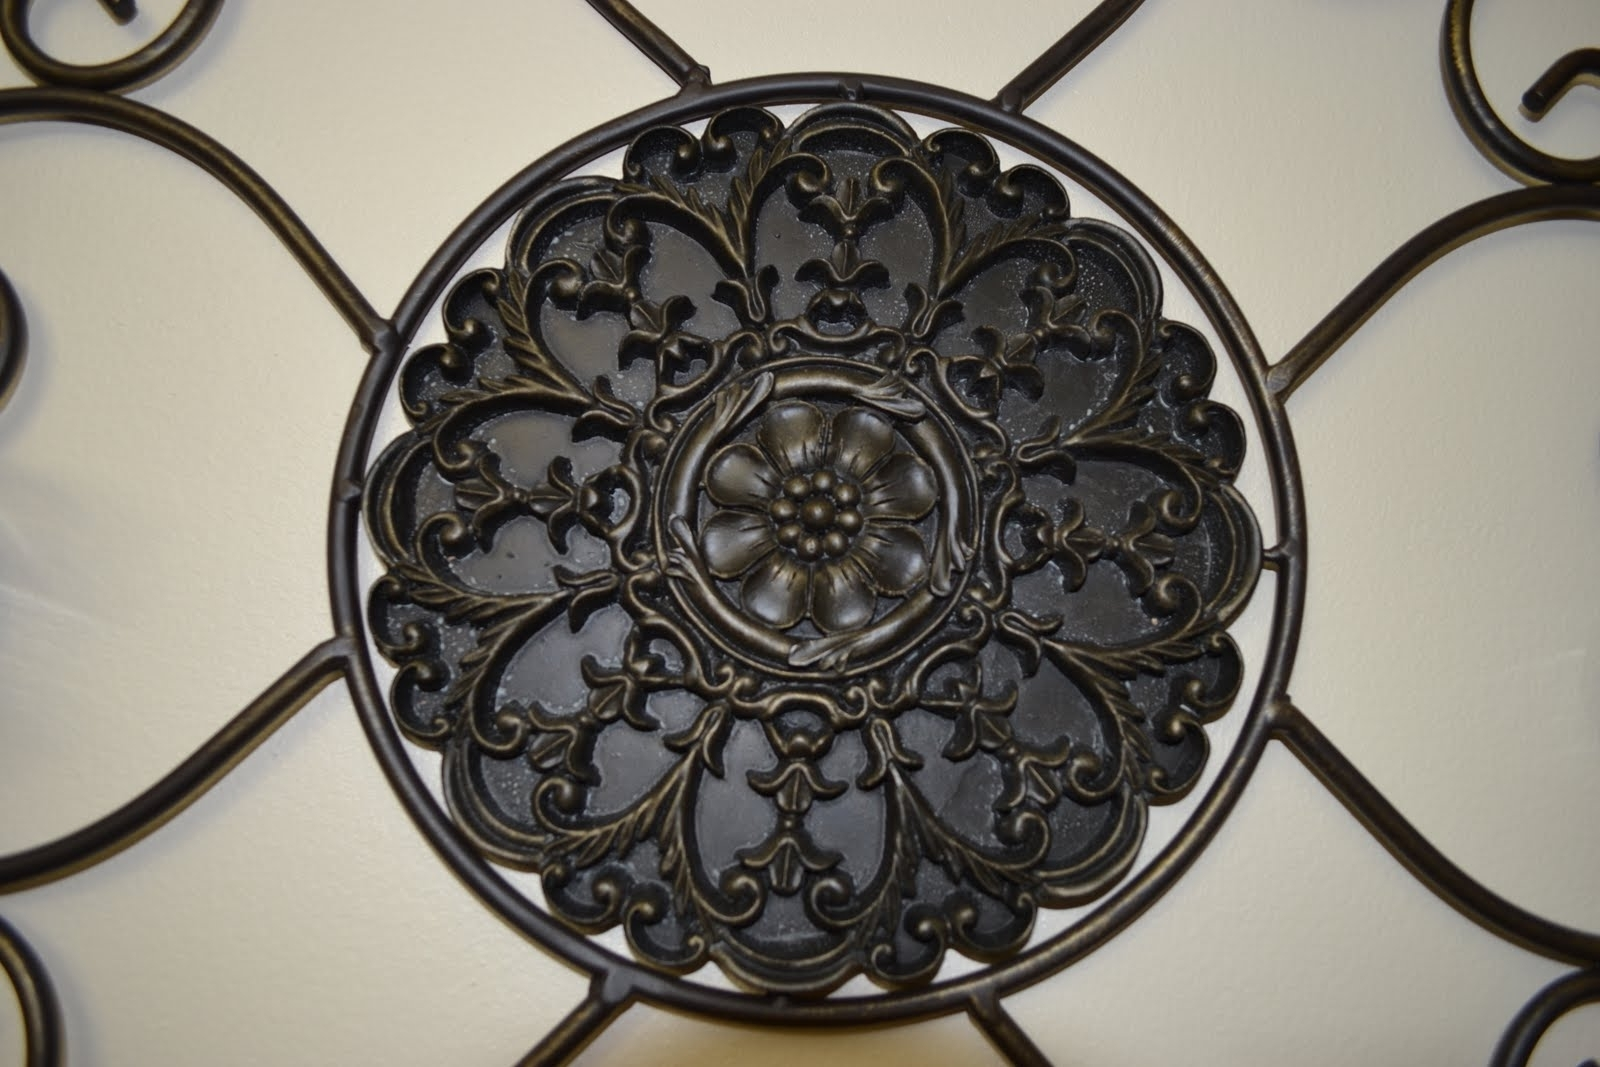 Hobby Lobby Metal Wall Art Throughout Newest Metal Wall Decor Hobby Pic On Hobby Lobby Wall Art – Prix Dalle (Gallery 4 of 15)